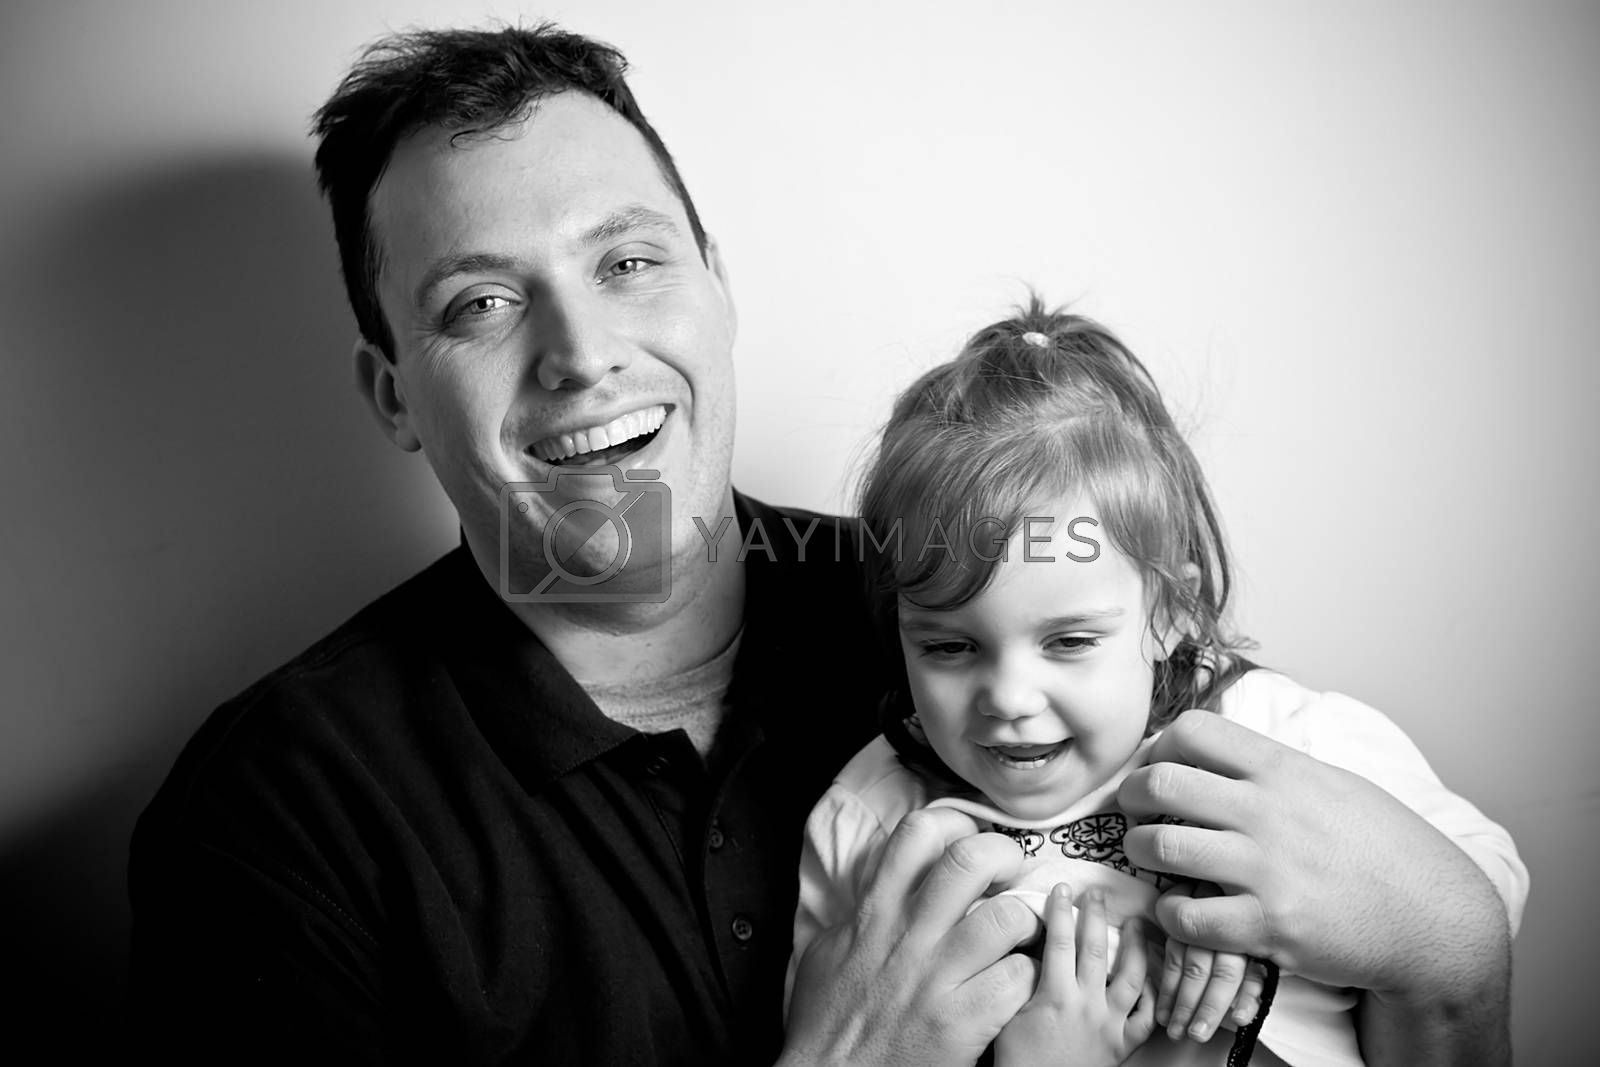 A young happy toddler aged little girl posing with her daddy. Black and white.